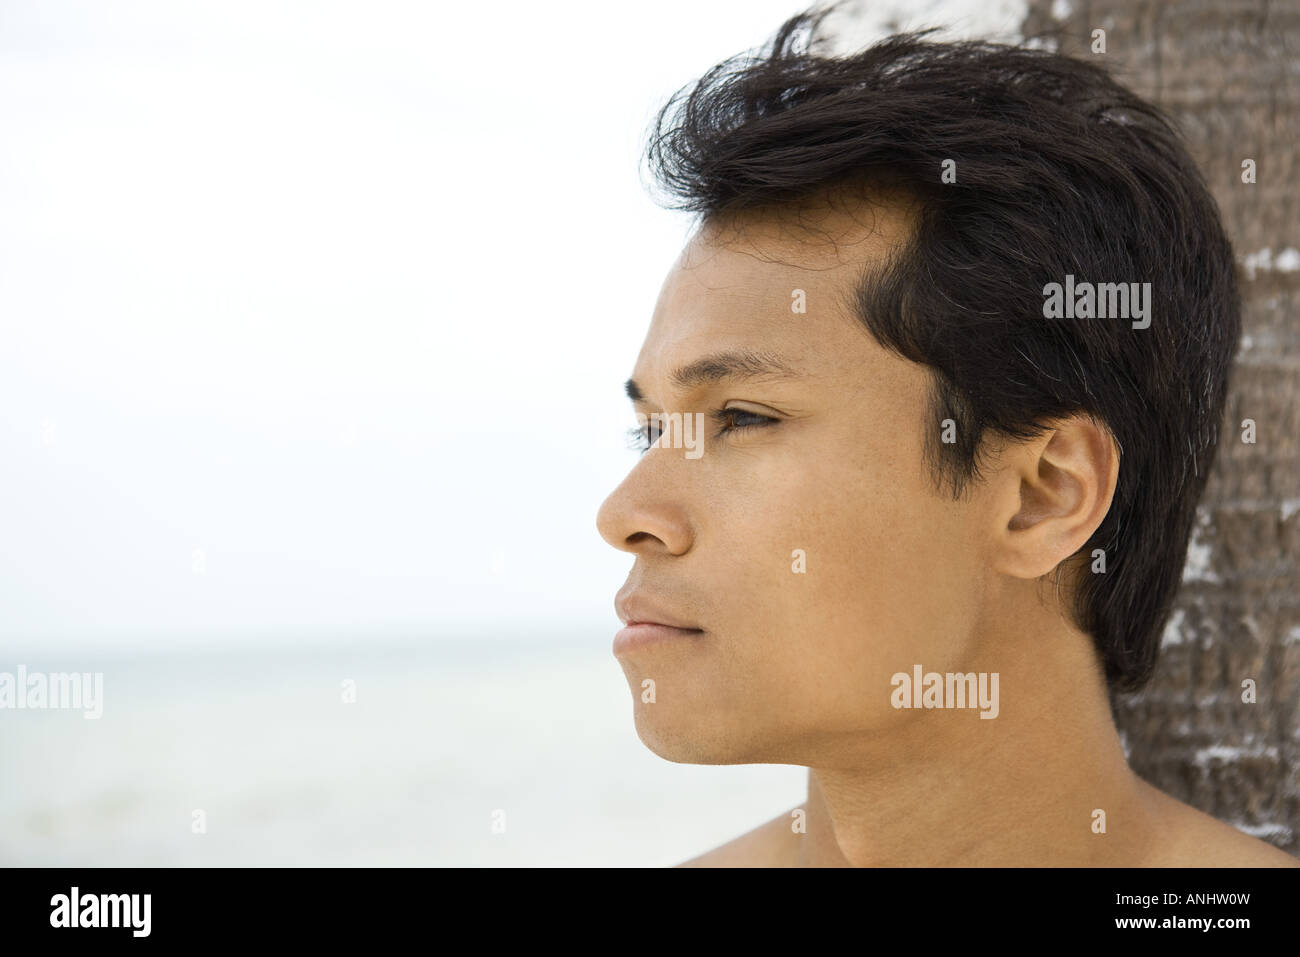 Man leaning against palm tree, looking away, headshot - Stock Image